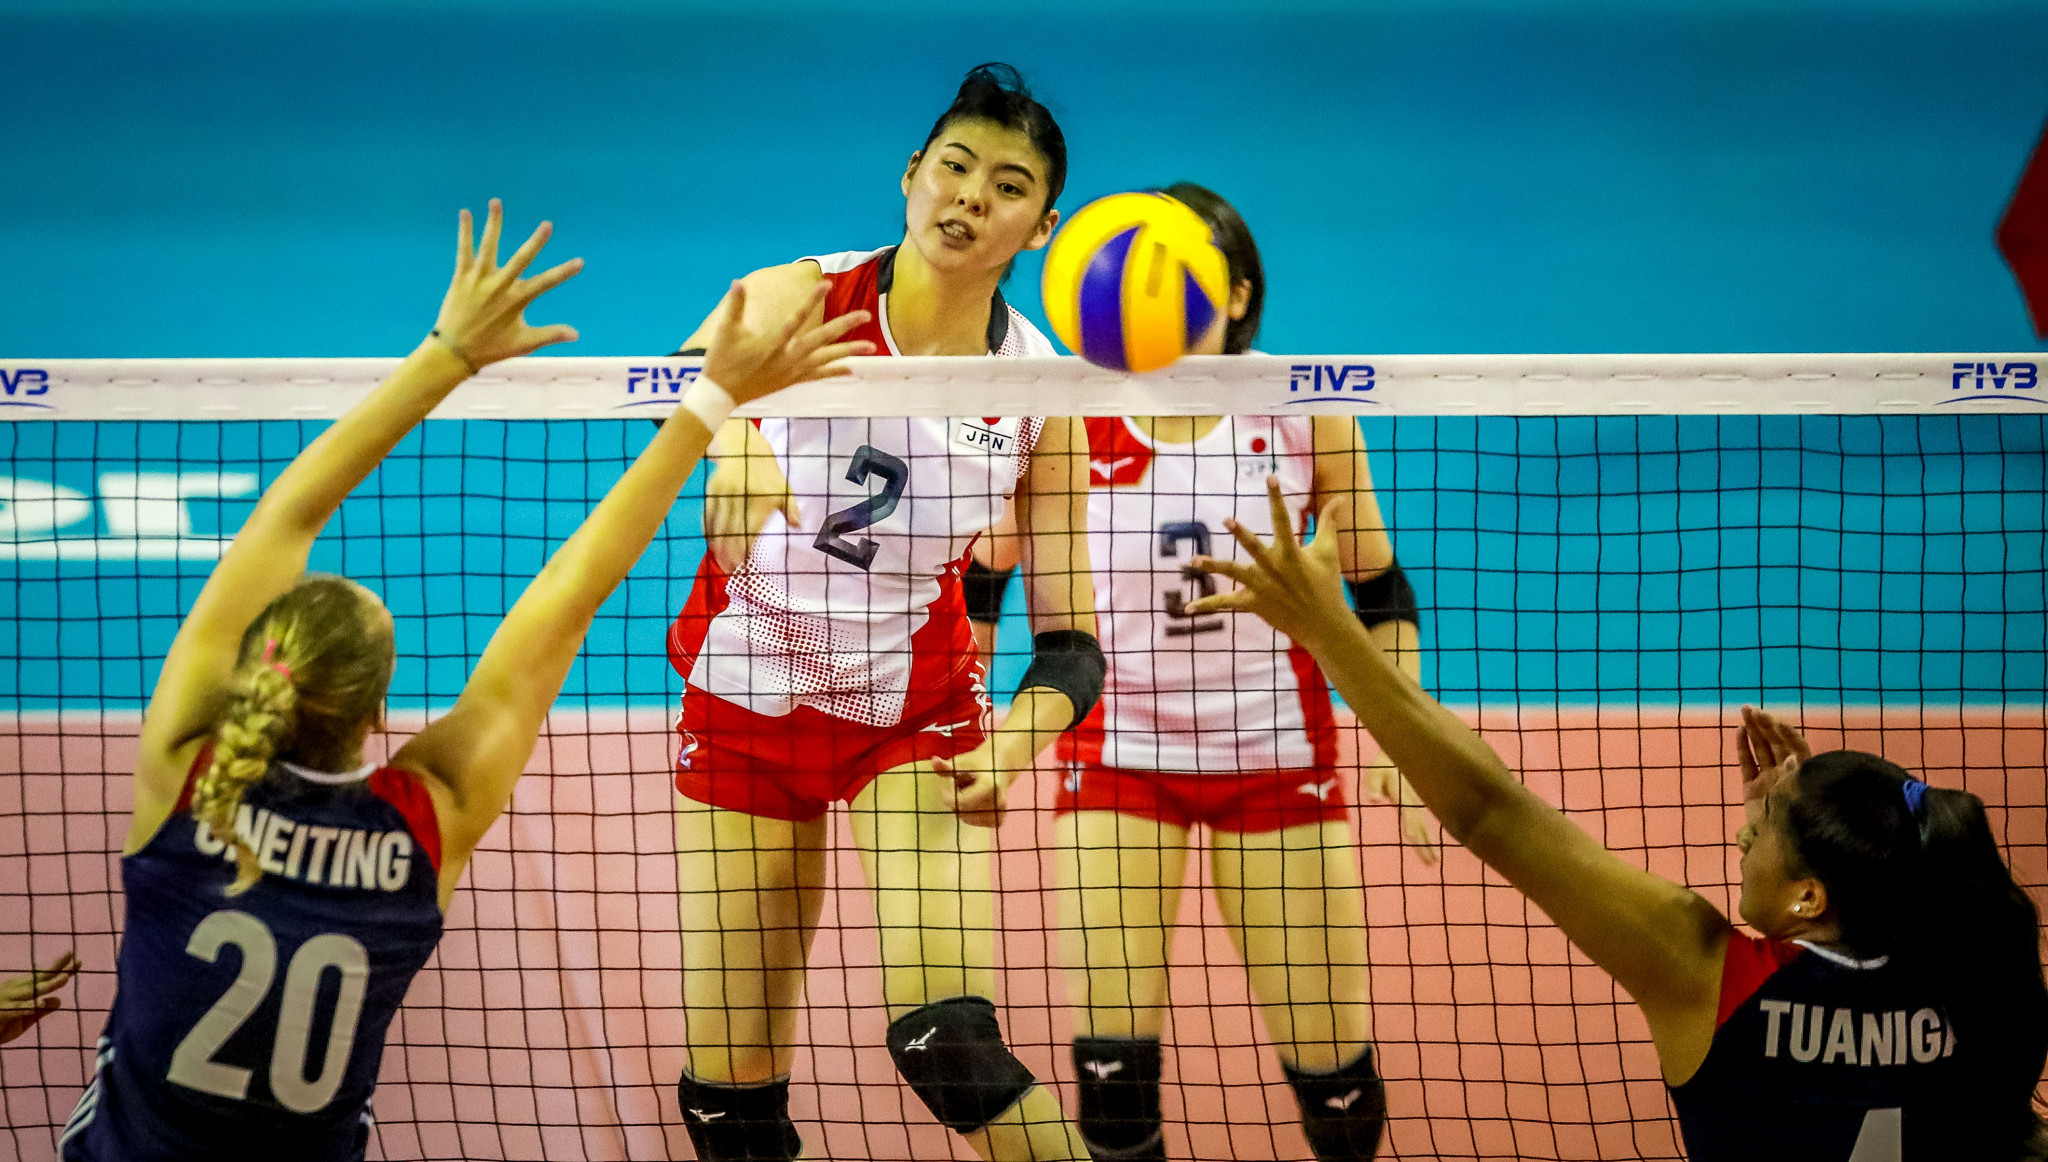 Japan remain undefeated at the tournament in Mexico ©FIVB